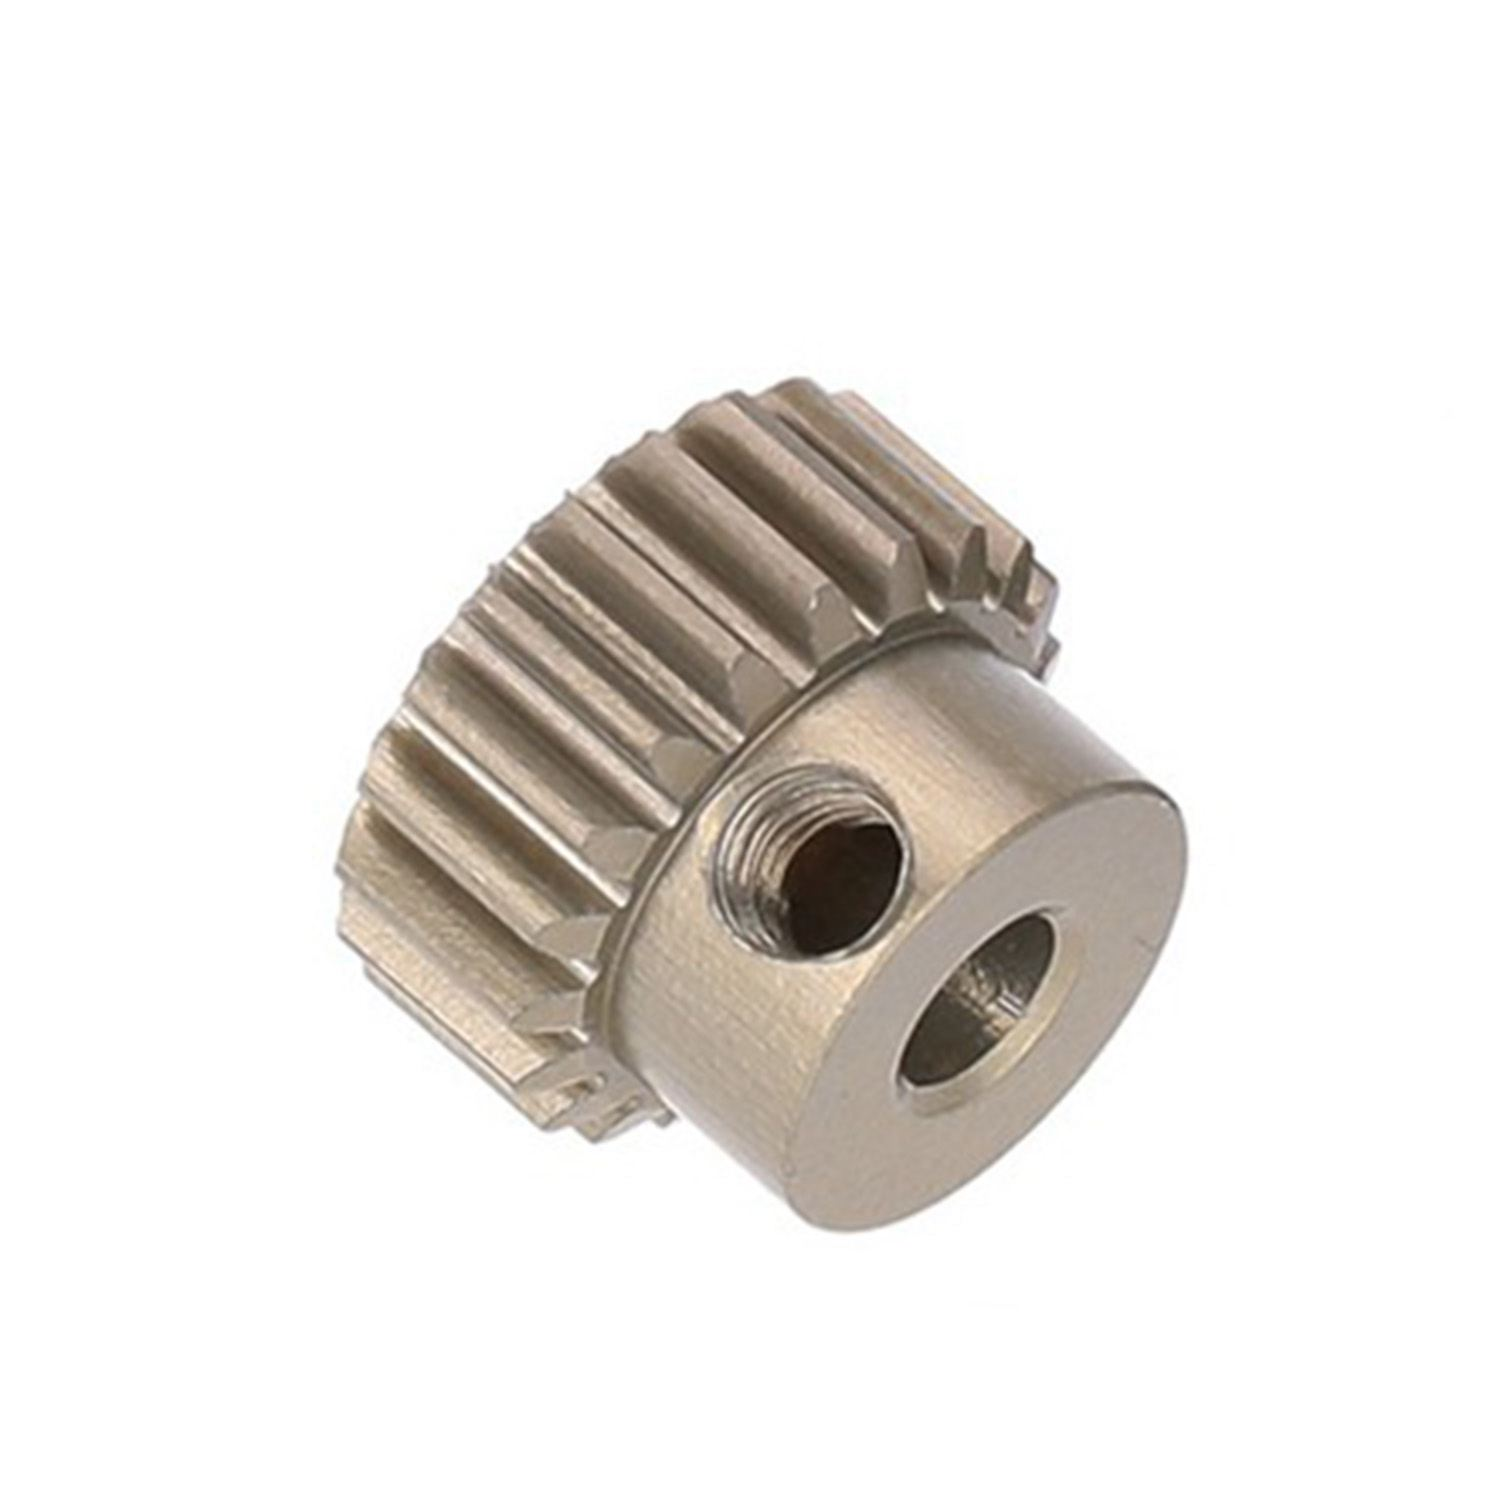 Metal 48DP Rust-proof Gear 3.175mm Motor Pinion Gear 20T 21T 28T 32T 35T 36T 38T For RC Car Brushed Brushless Motor